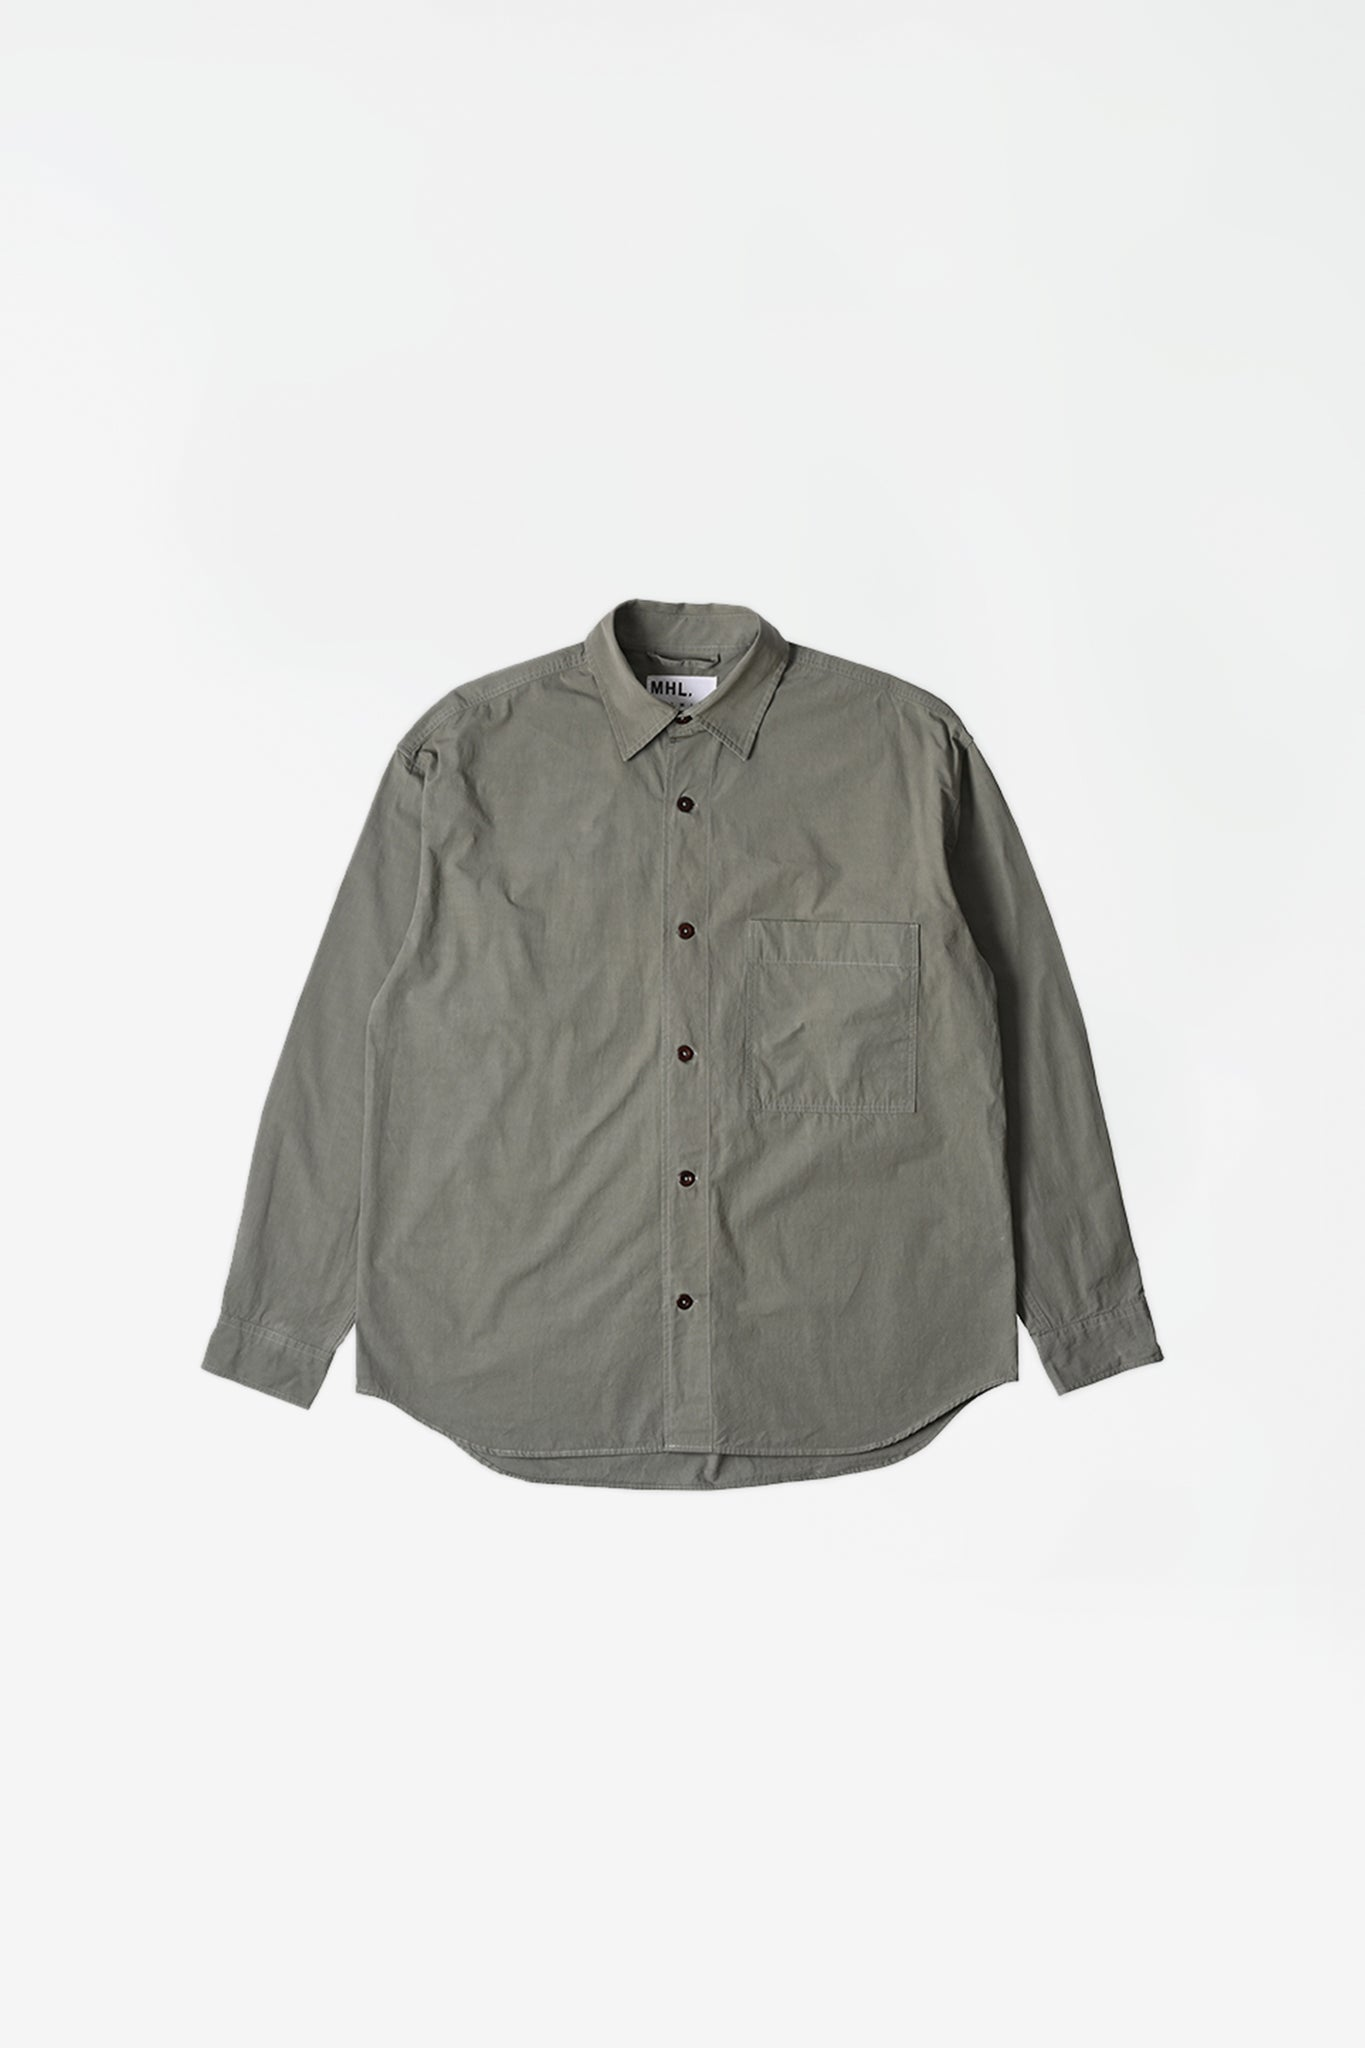 Oversized work shirt dry cotton poplin sage